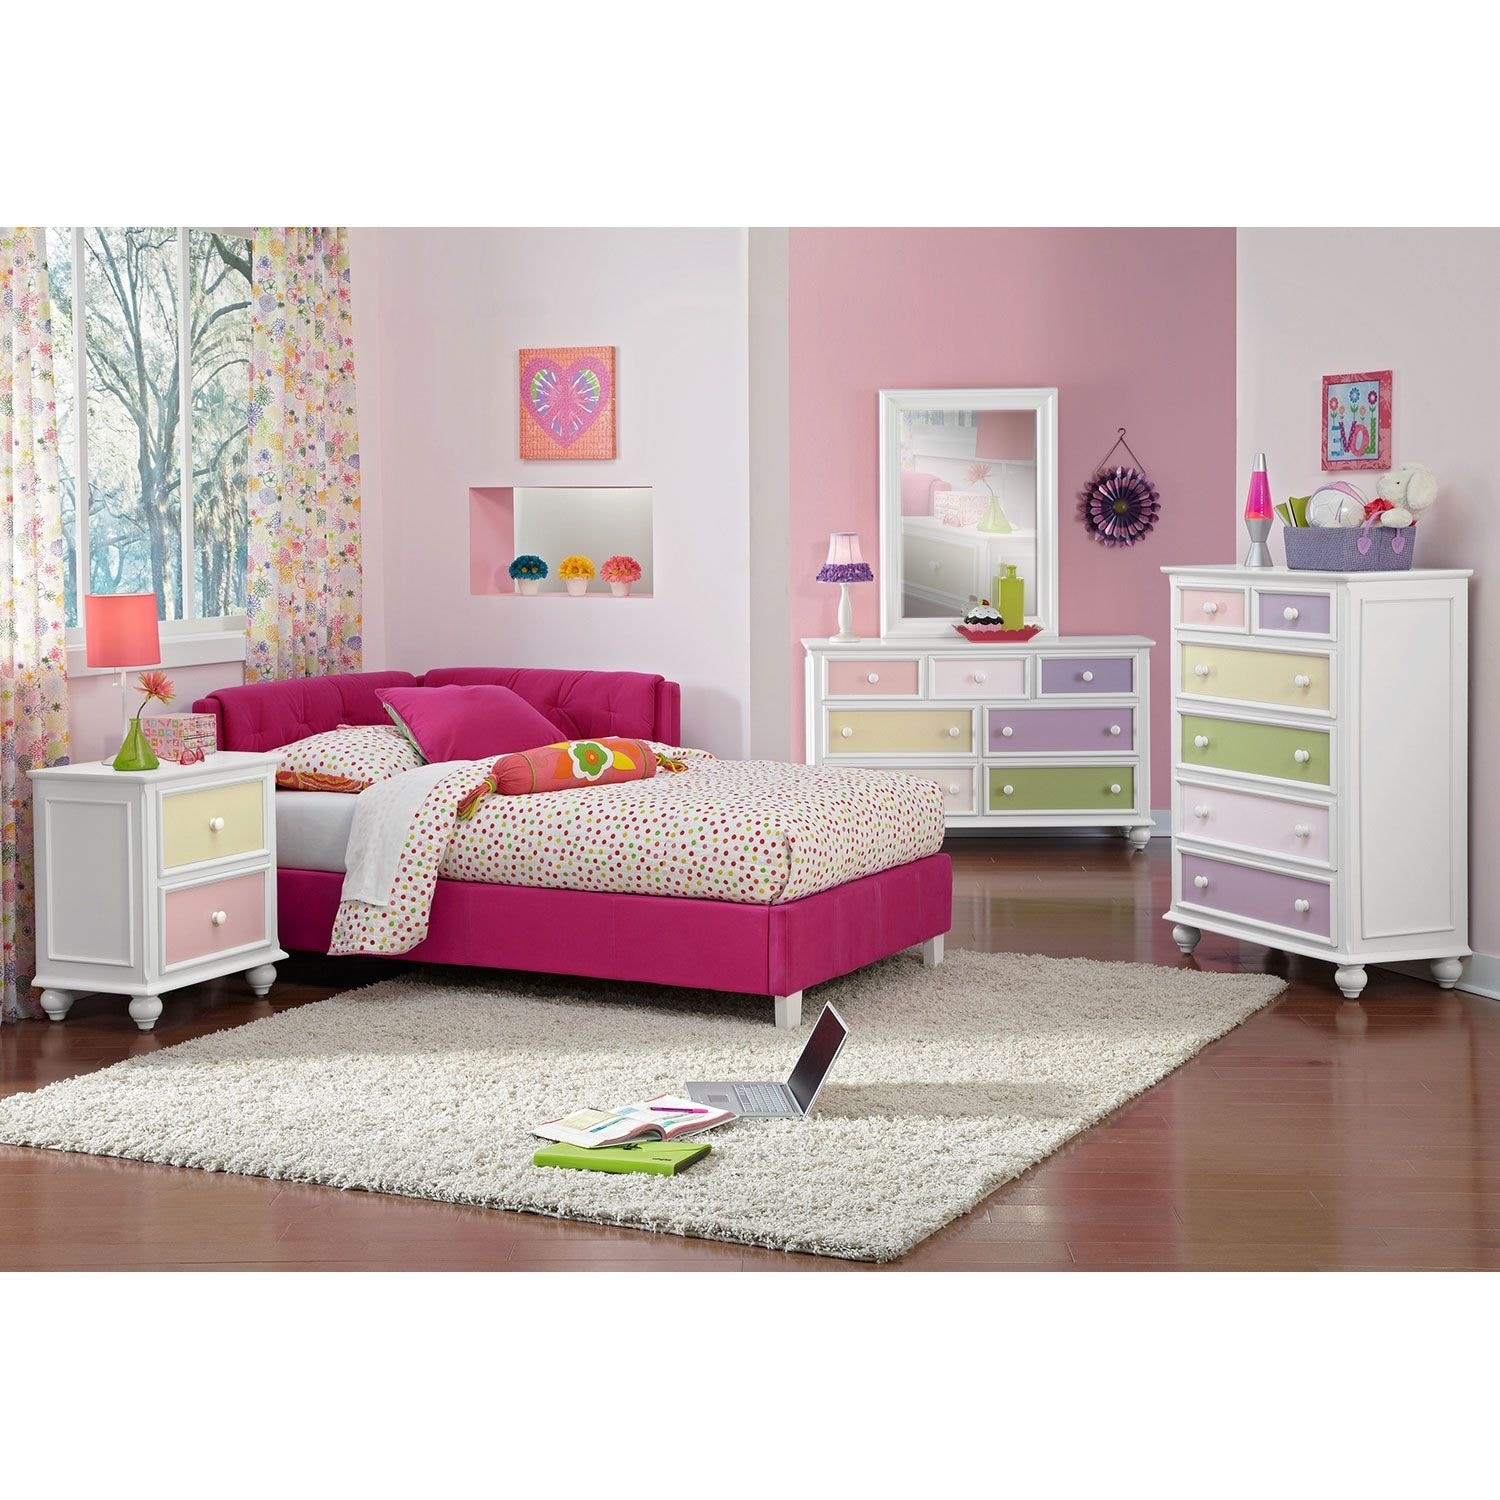 Beds Twin City Value Girls 6